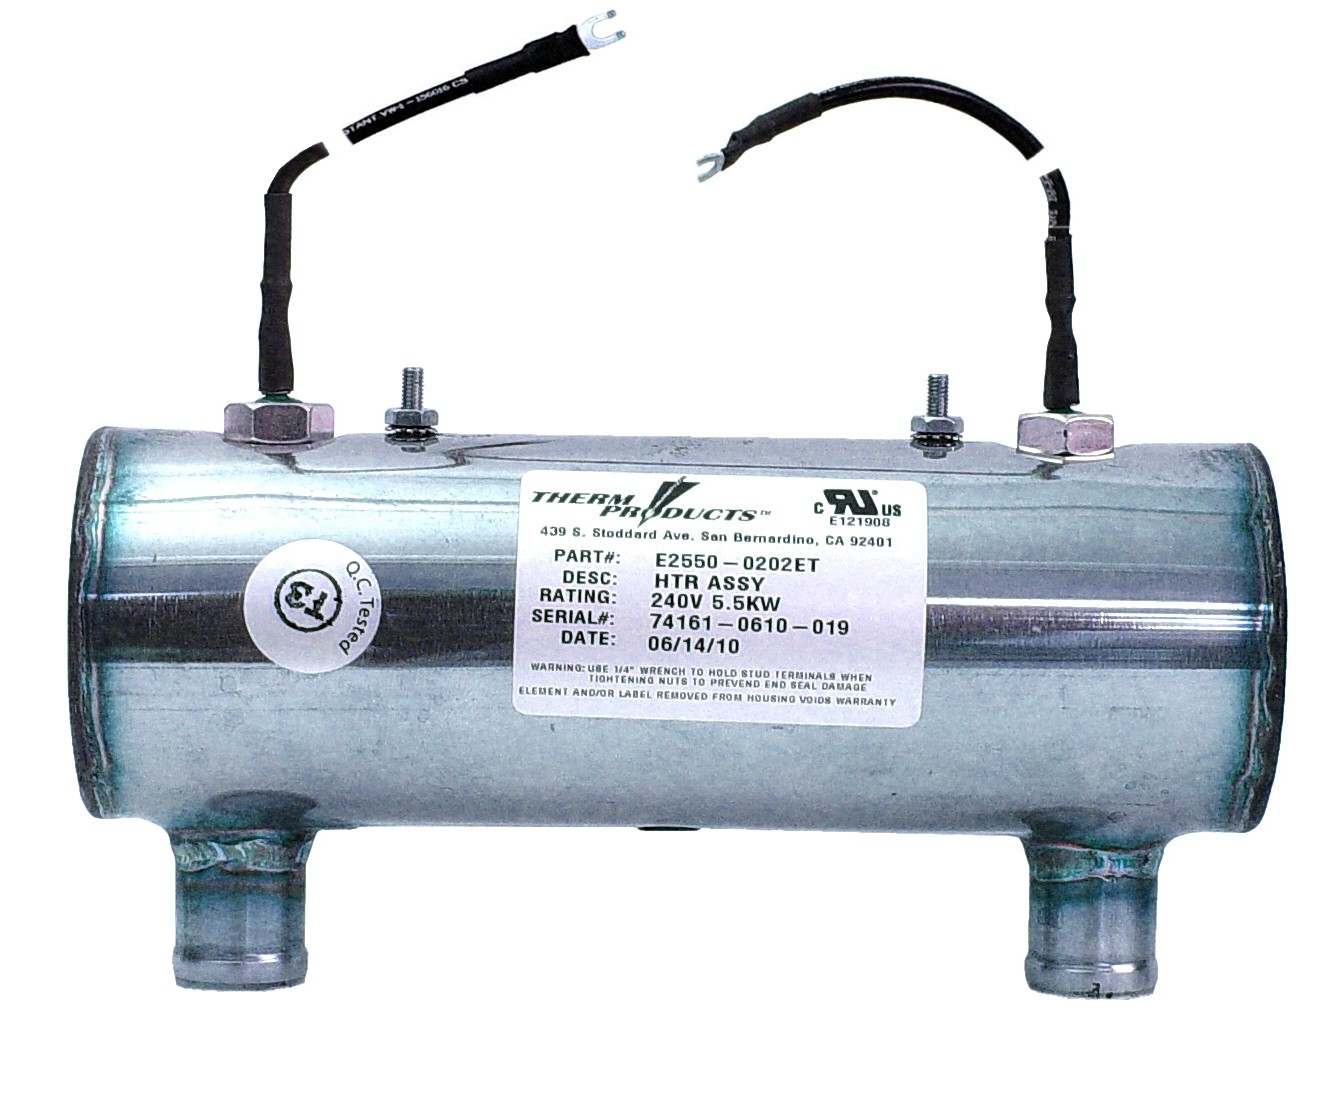 Pictures of Gatsby Spa Filters. Marvel Schebler Ma3spa Maintenance Manual